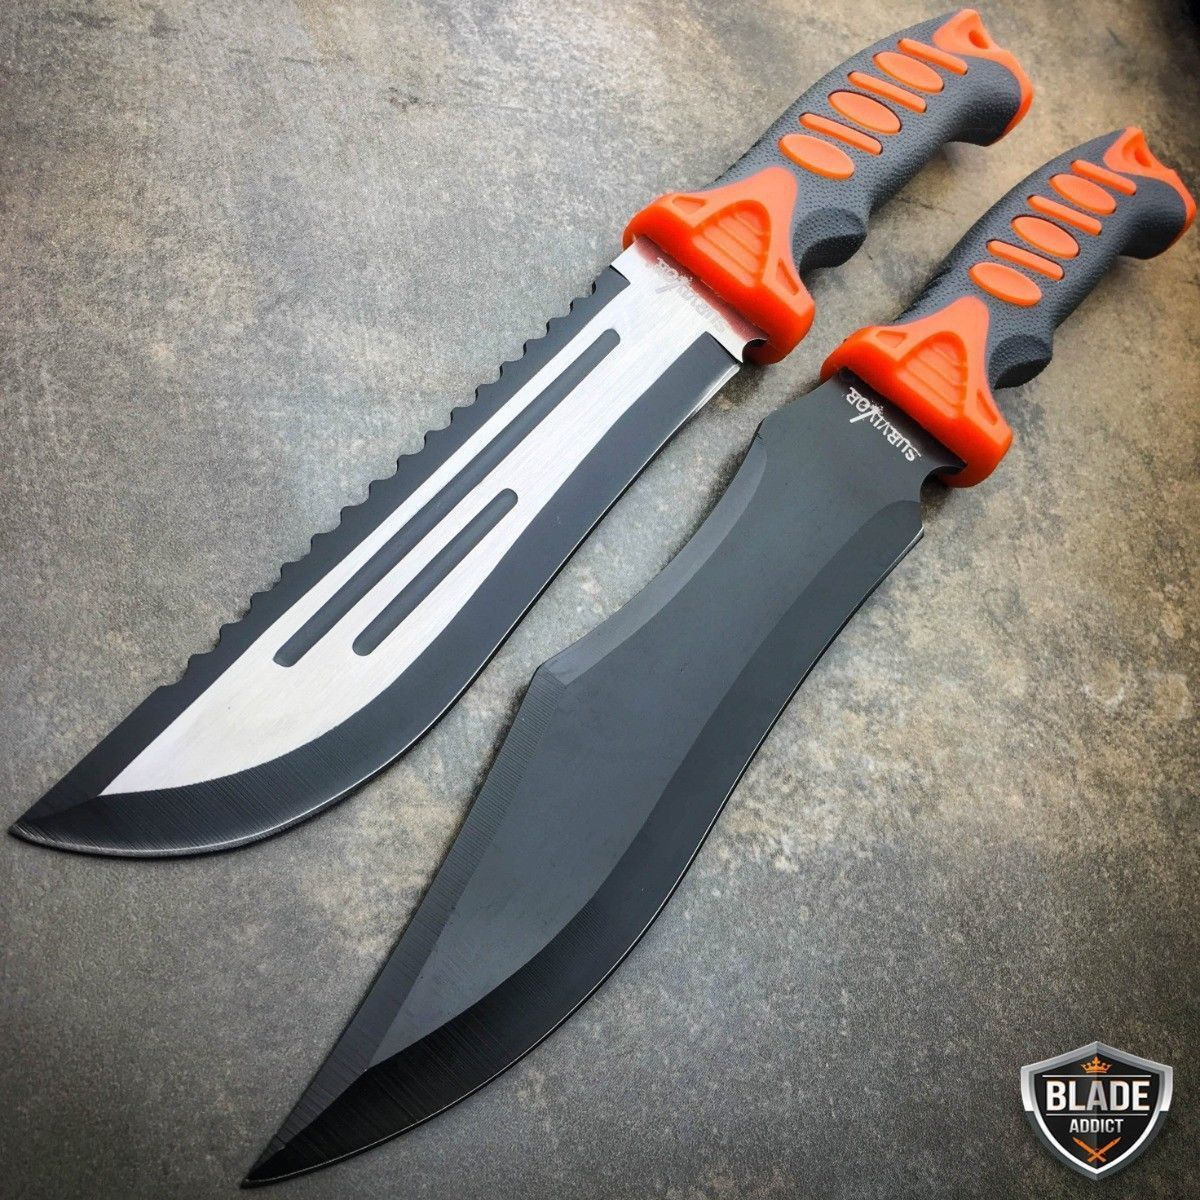 Camping tactical hunting rambo bowie survival fixed blade axe knife machete new